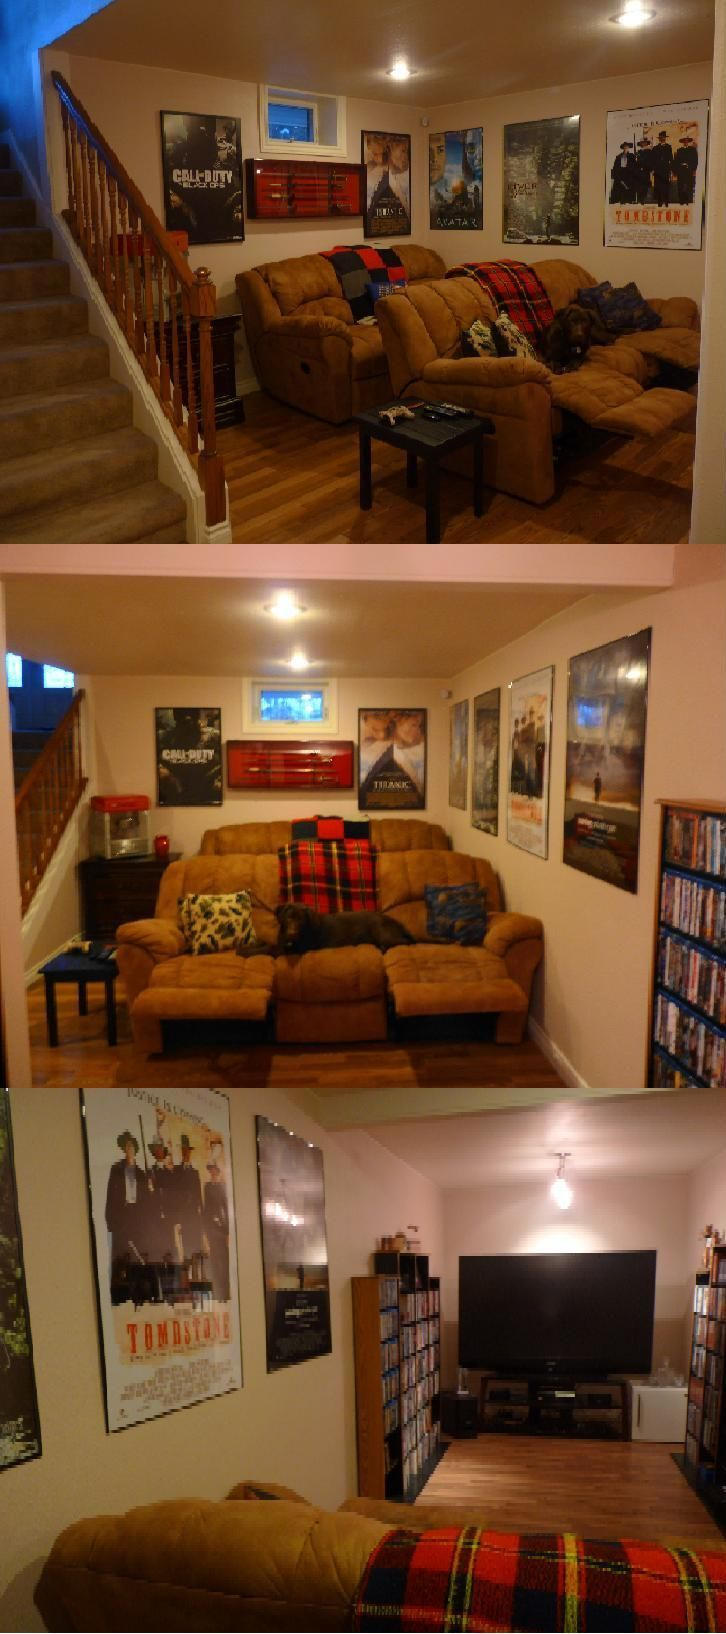 basement home theater i would put carpeting down and have more seating in front this is awesome [ 726 x 1634 Pixel ]